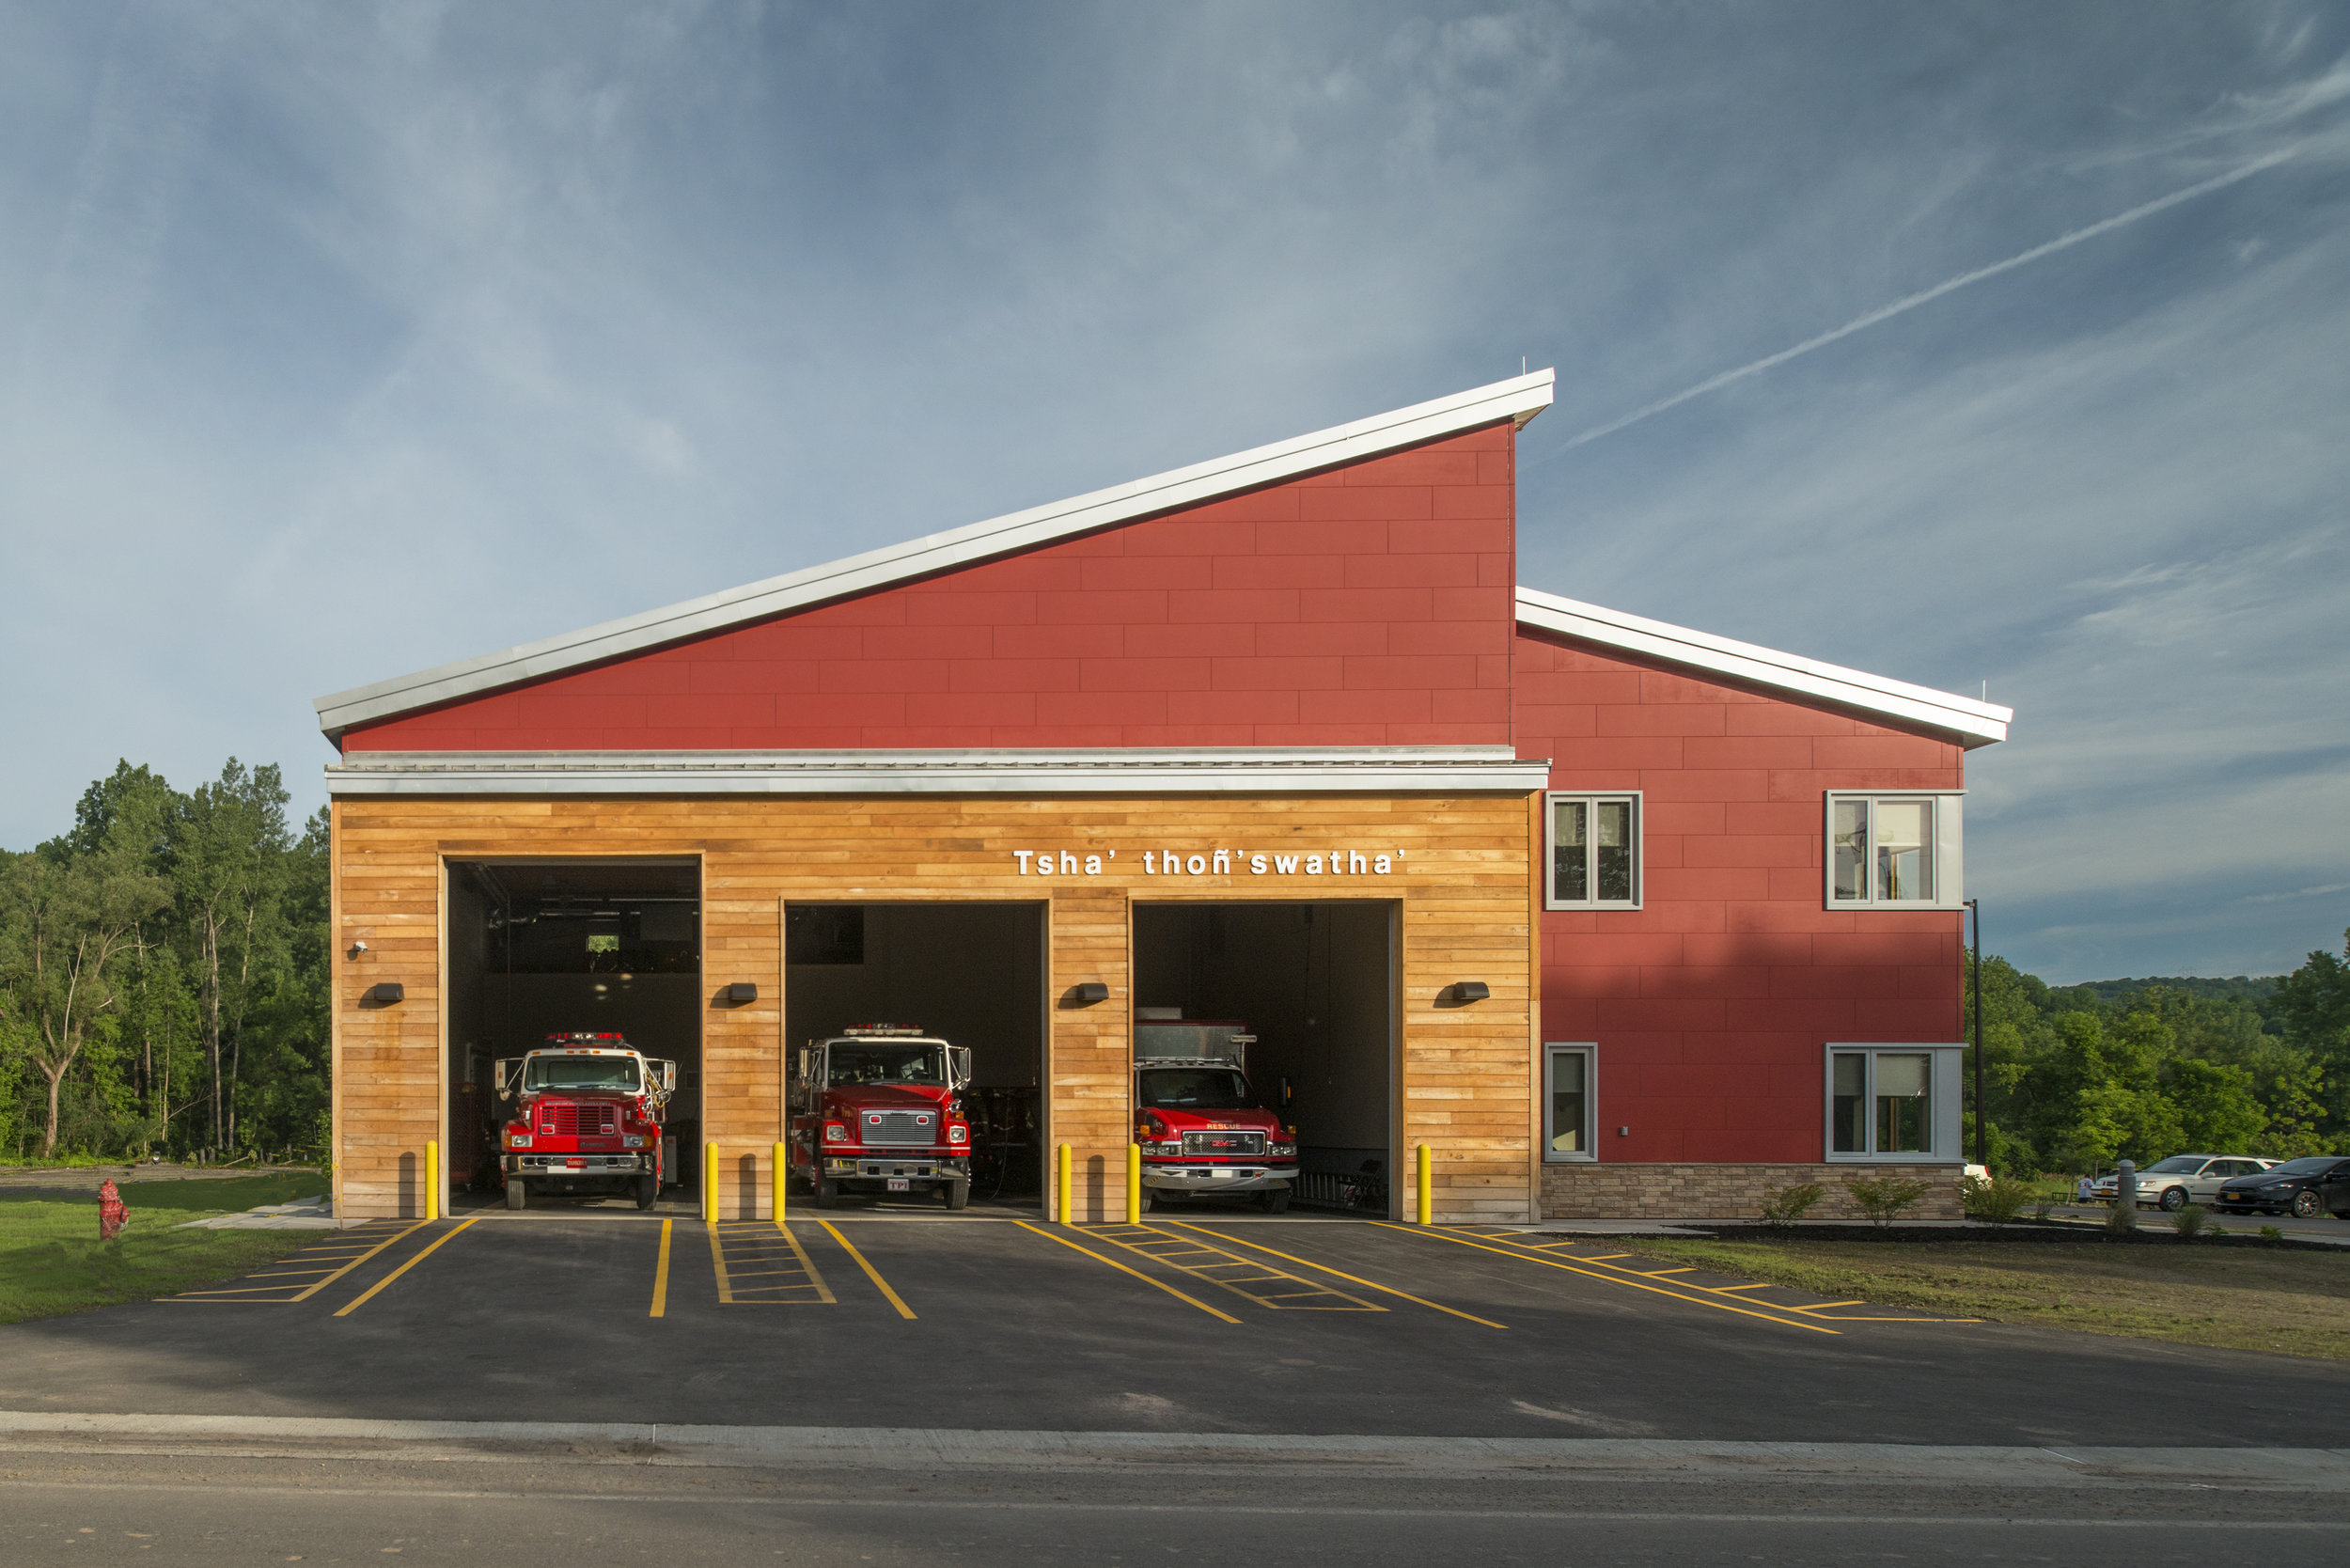 FIRE STATION<strong>The Nation's leadership looked to provide a new fire station that expresses their cultural values on sustainability.</strong>